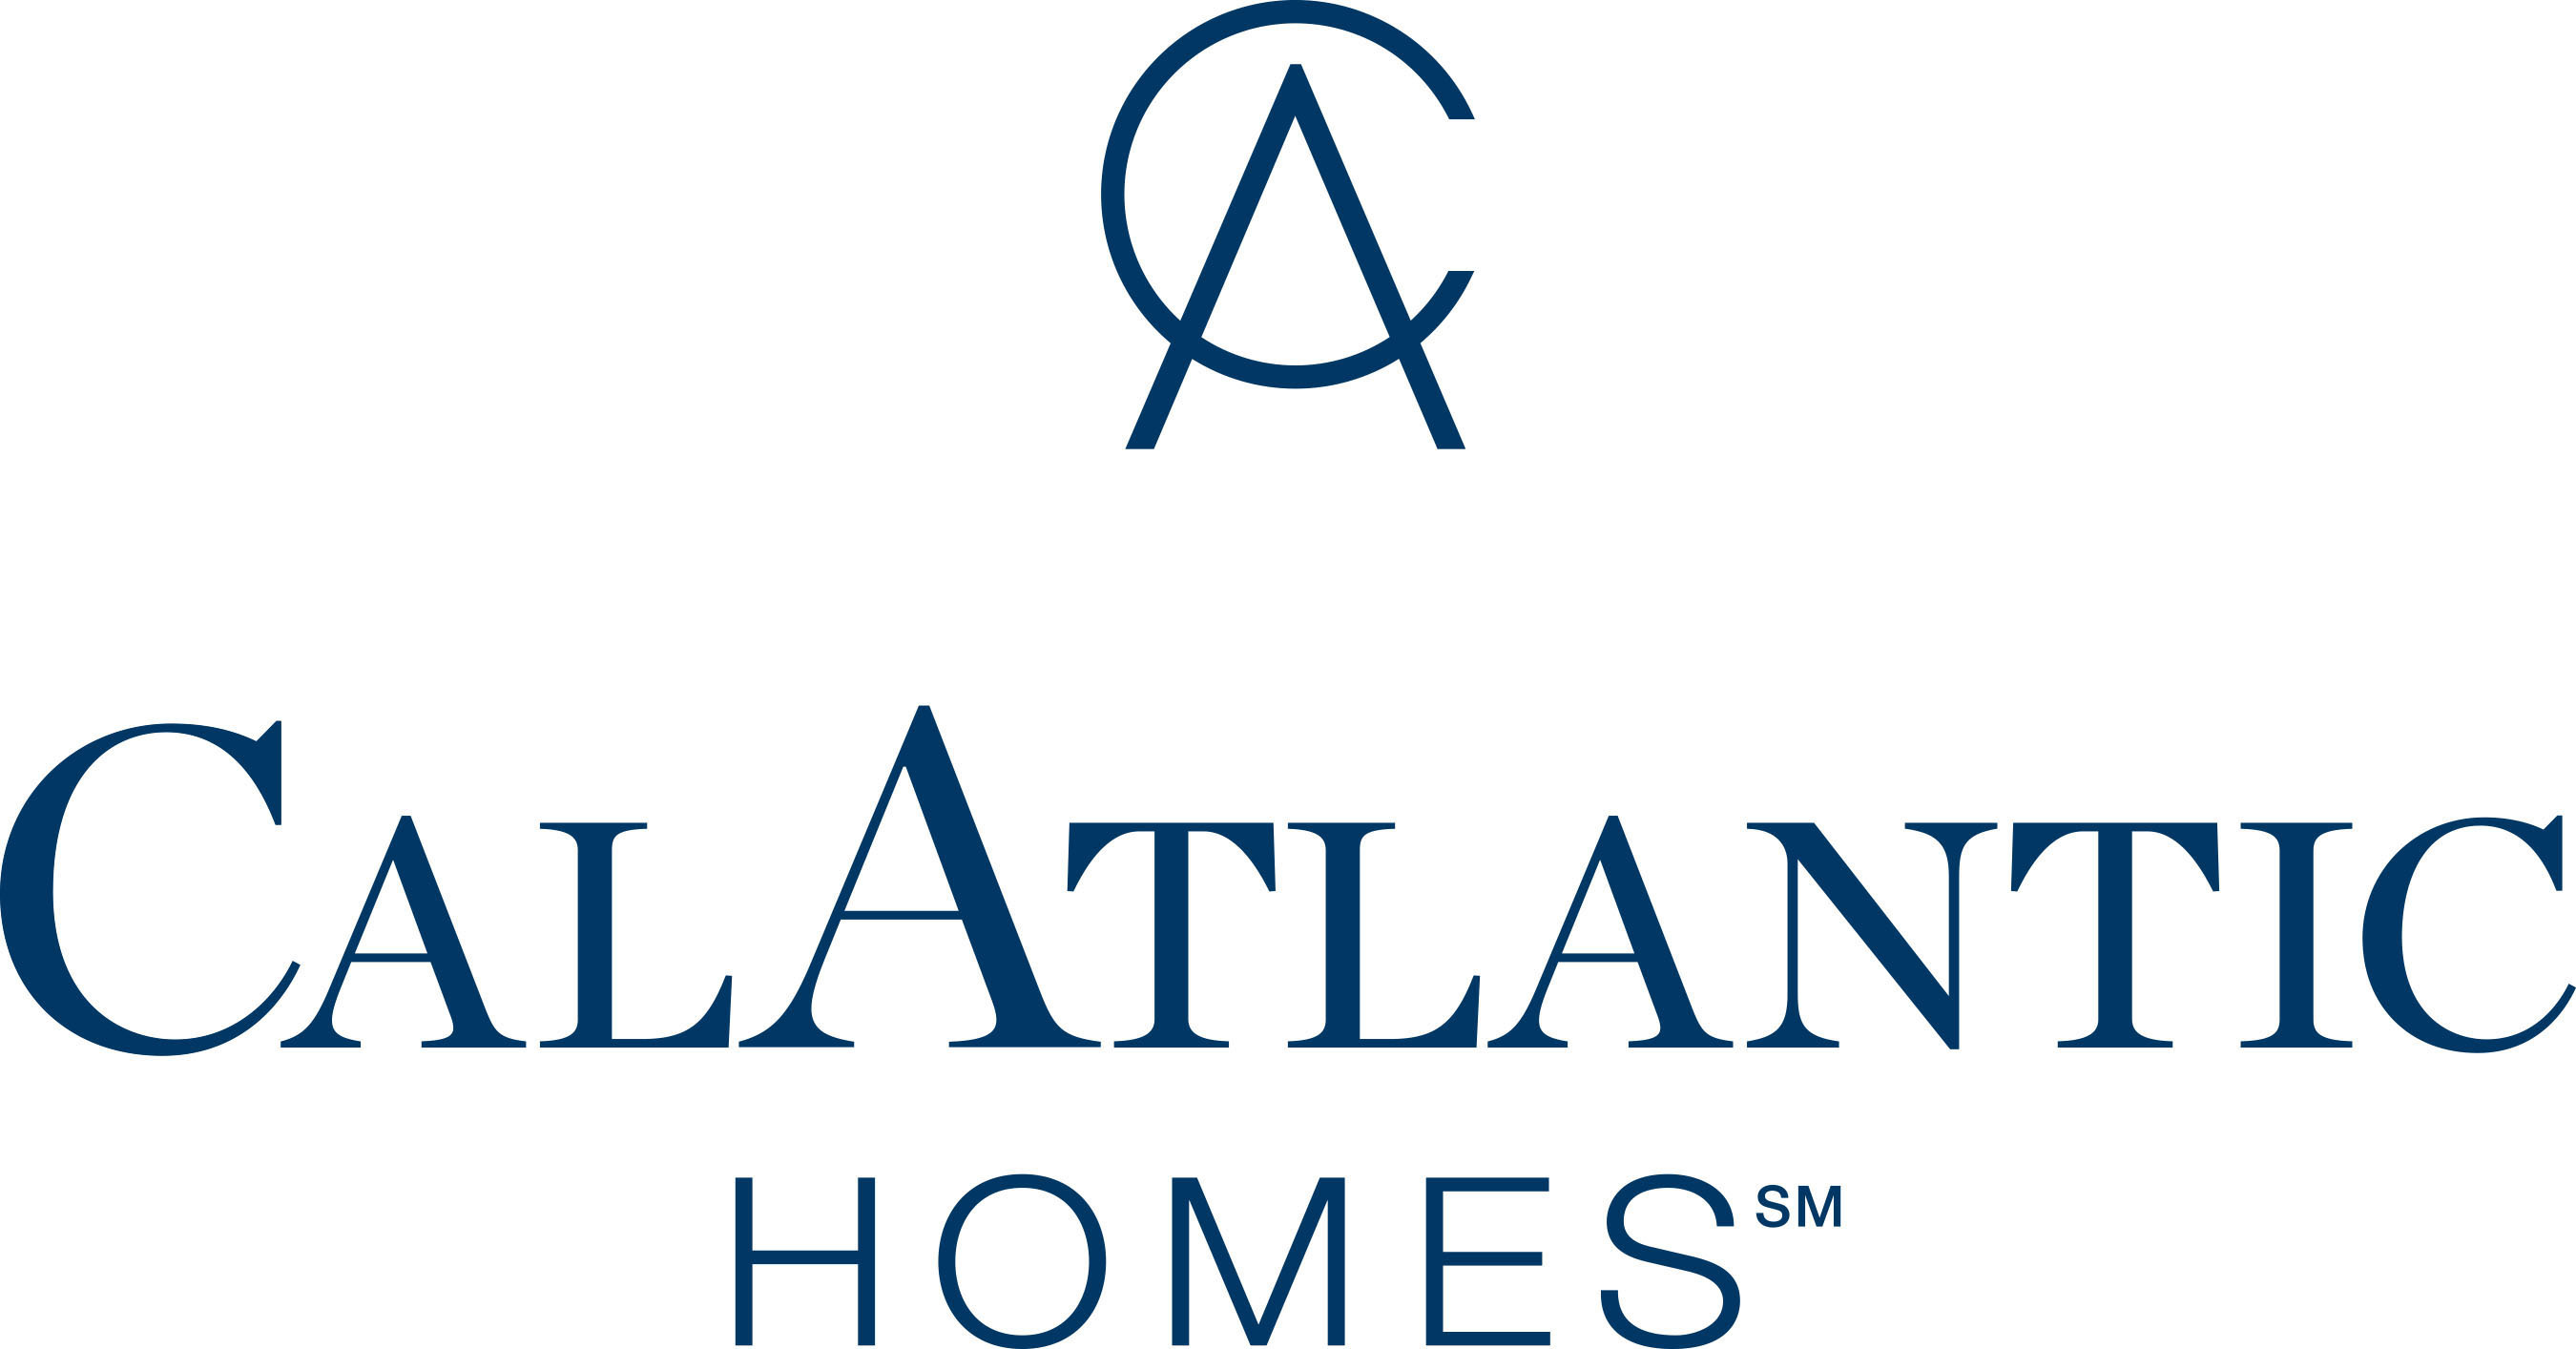 CalAtlantic Homes Debuts Upscale Community At Anthem Highlands In Broomfield, CO